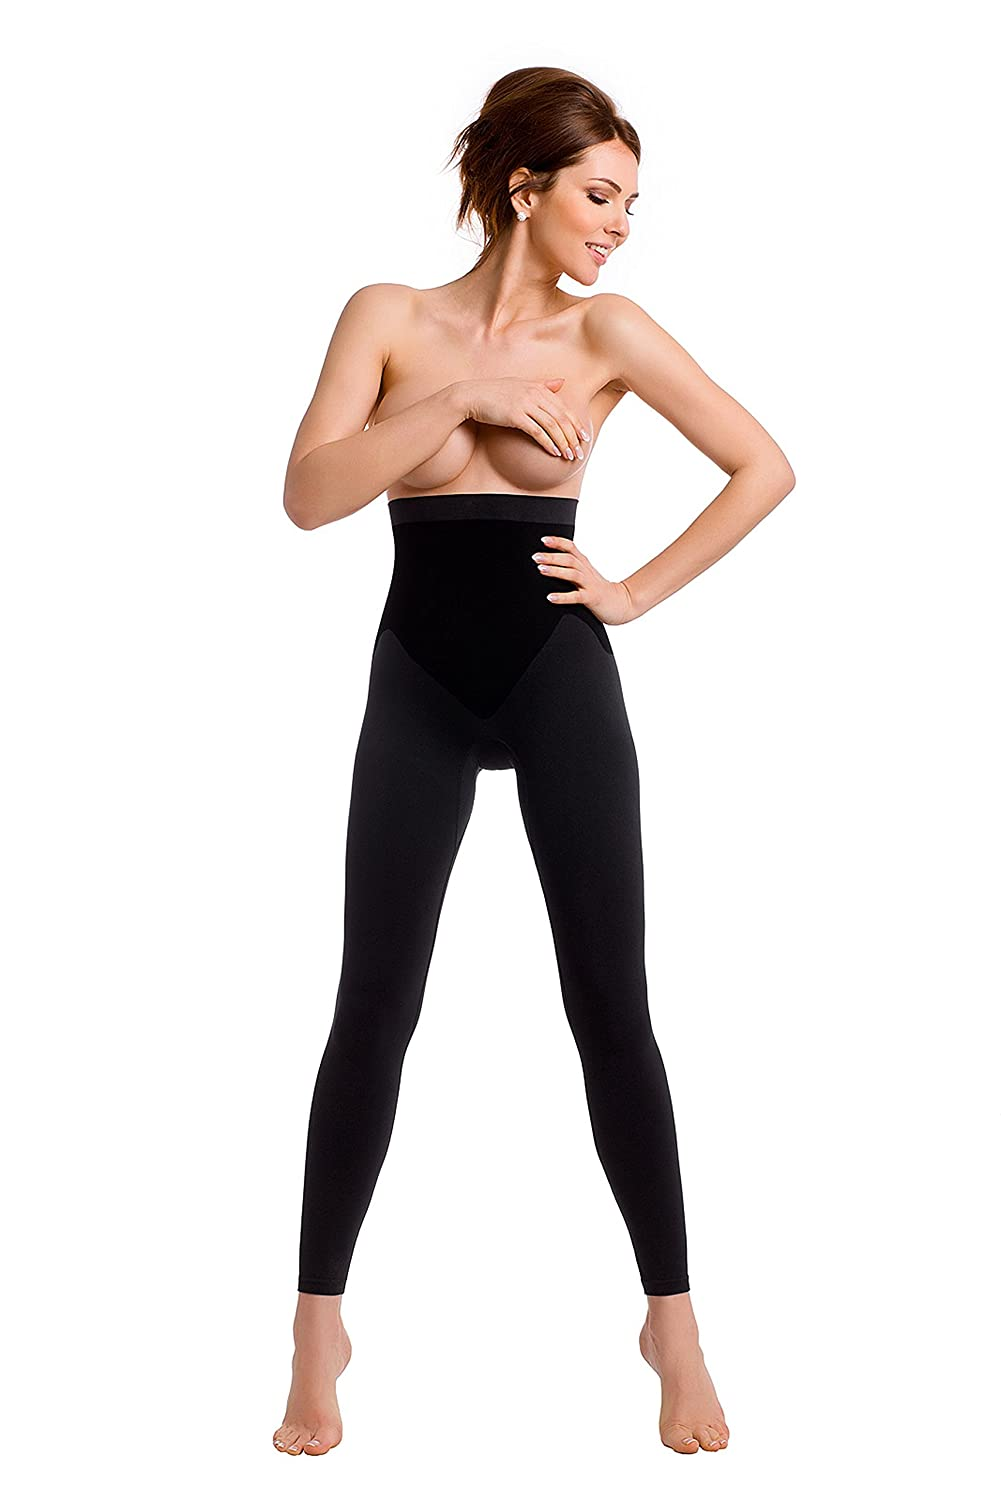 envie Shapewear Leggings figurformend hoch tailliert